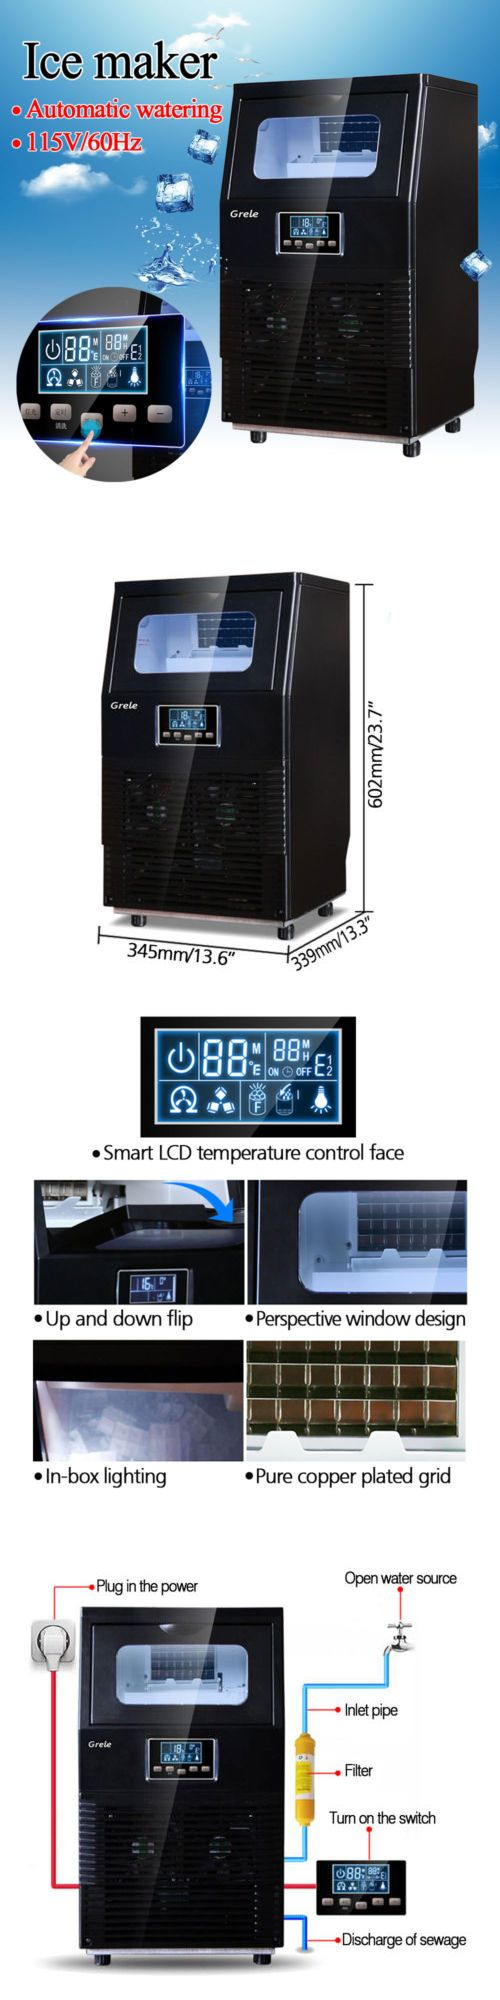 Countertop Ice Makers 122929 New 2018 Intelligent Automatic Lcd